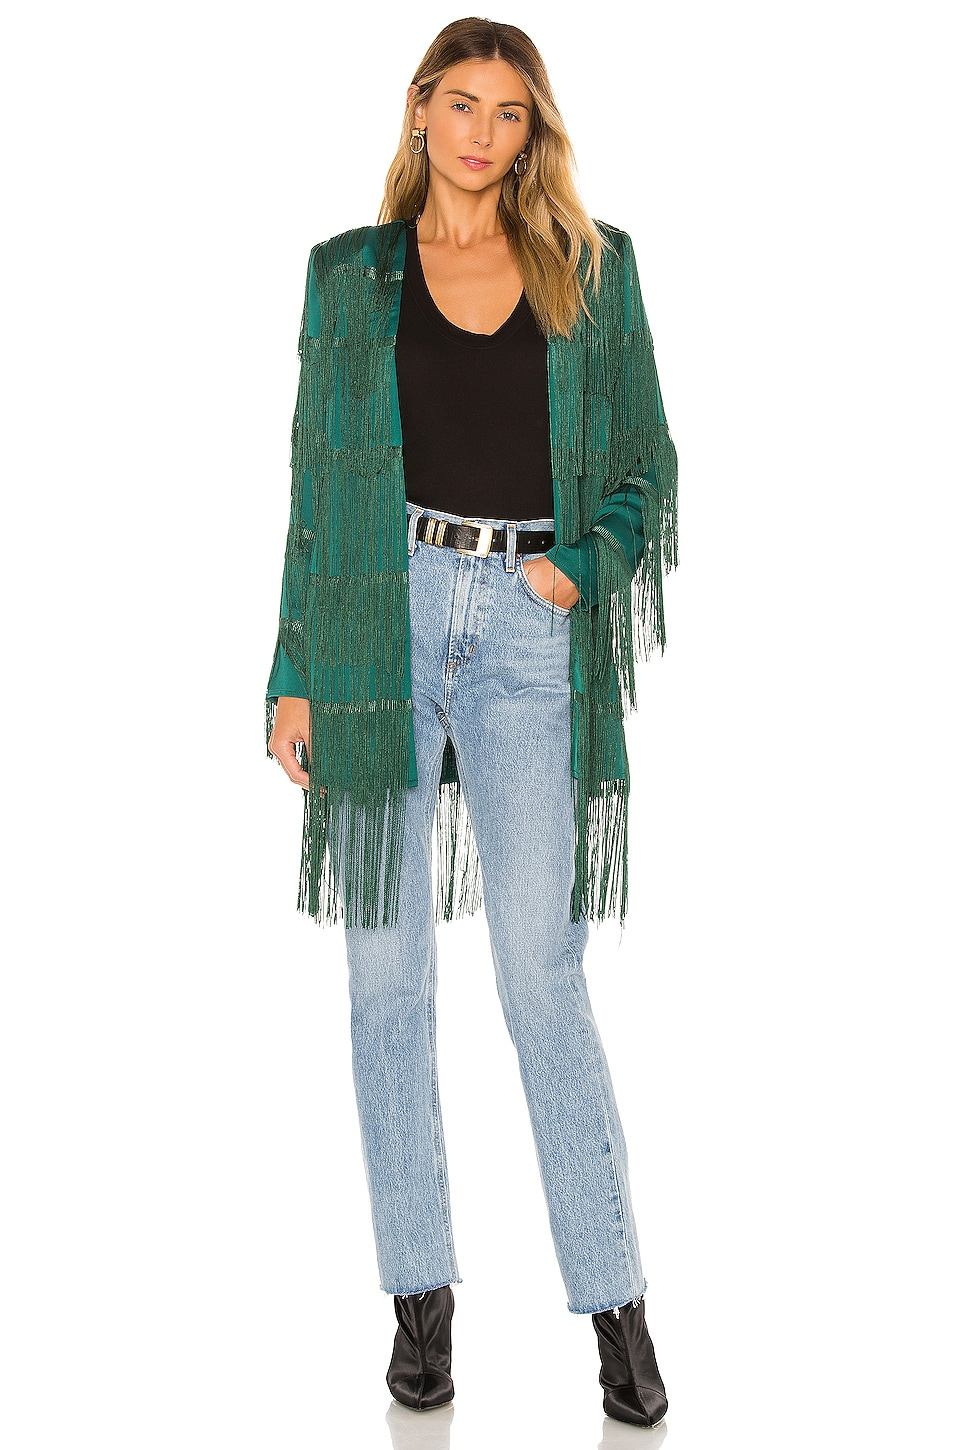 House of Harlow 1960 x REVOLVE Ramsey Fringe Jacket in Emerald